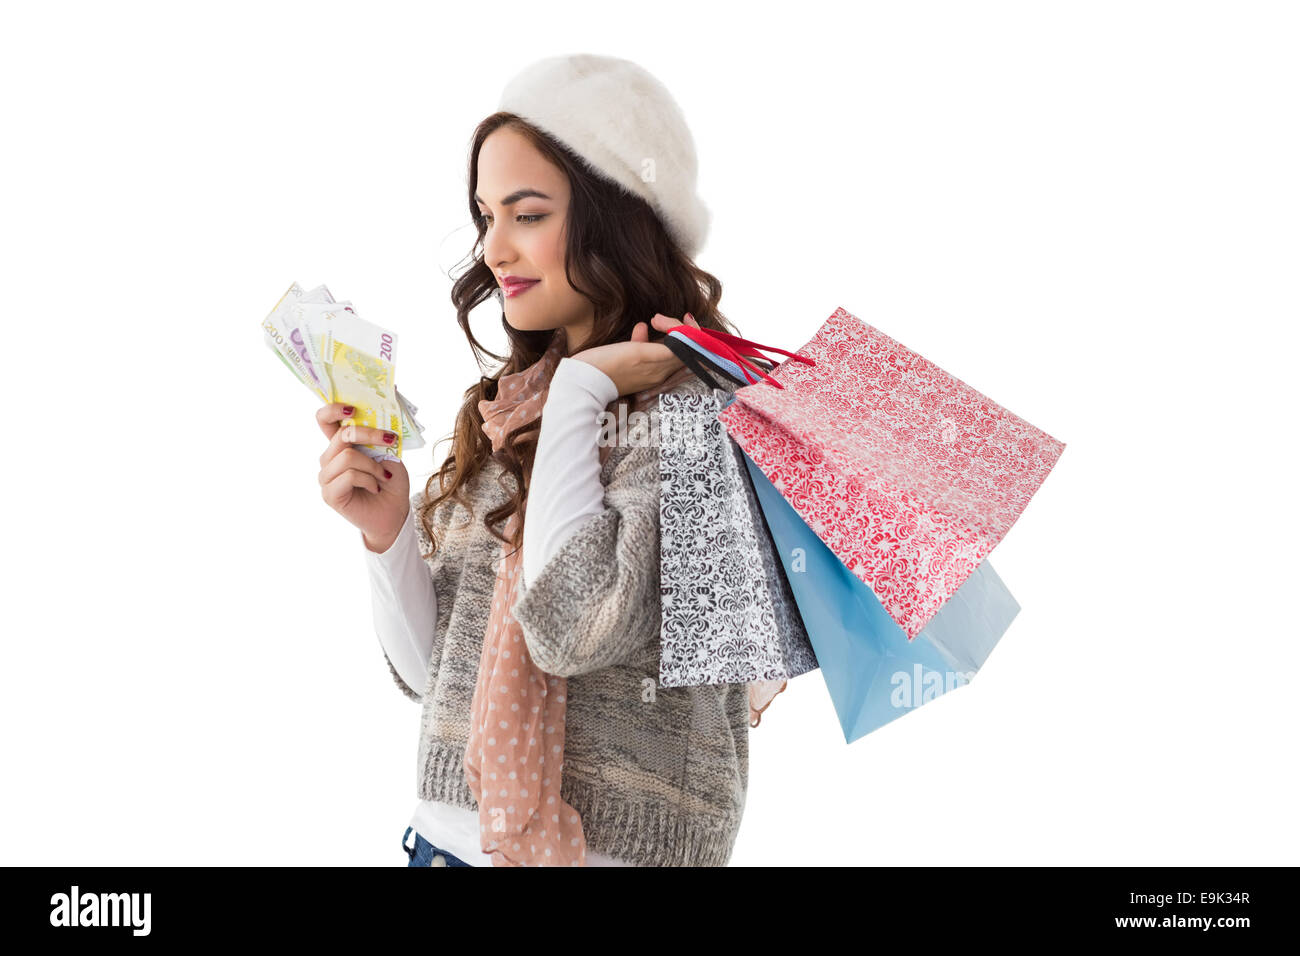 Happy brunette holding cash and shopping bags - Stock Image